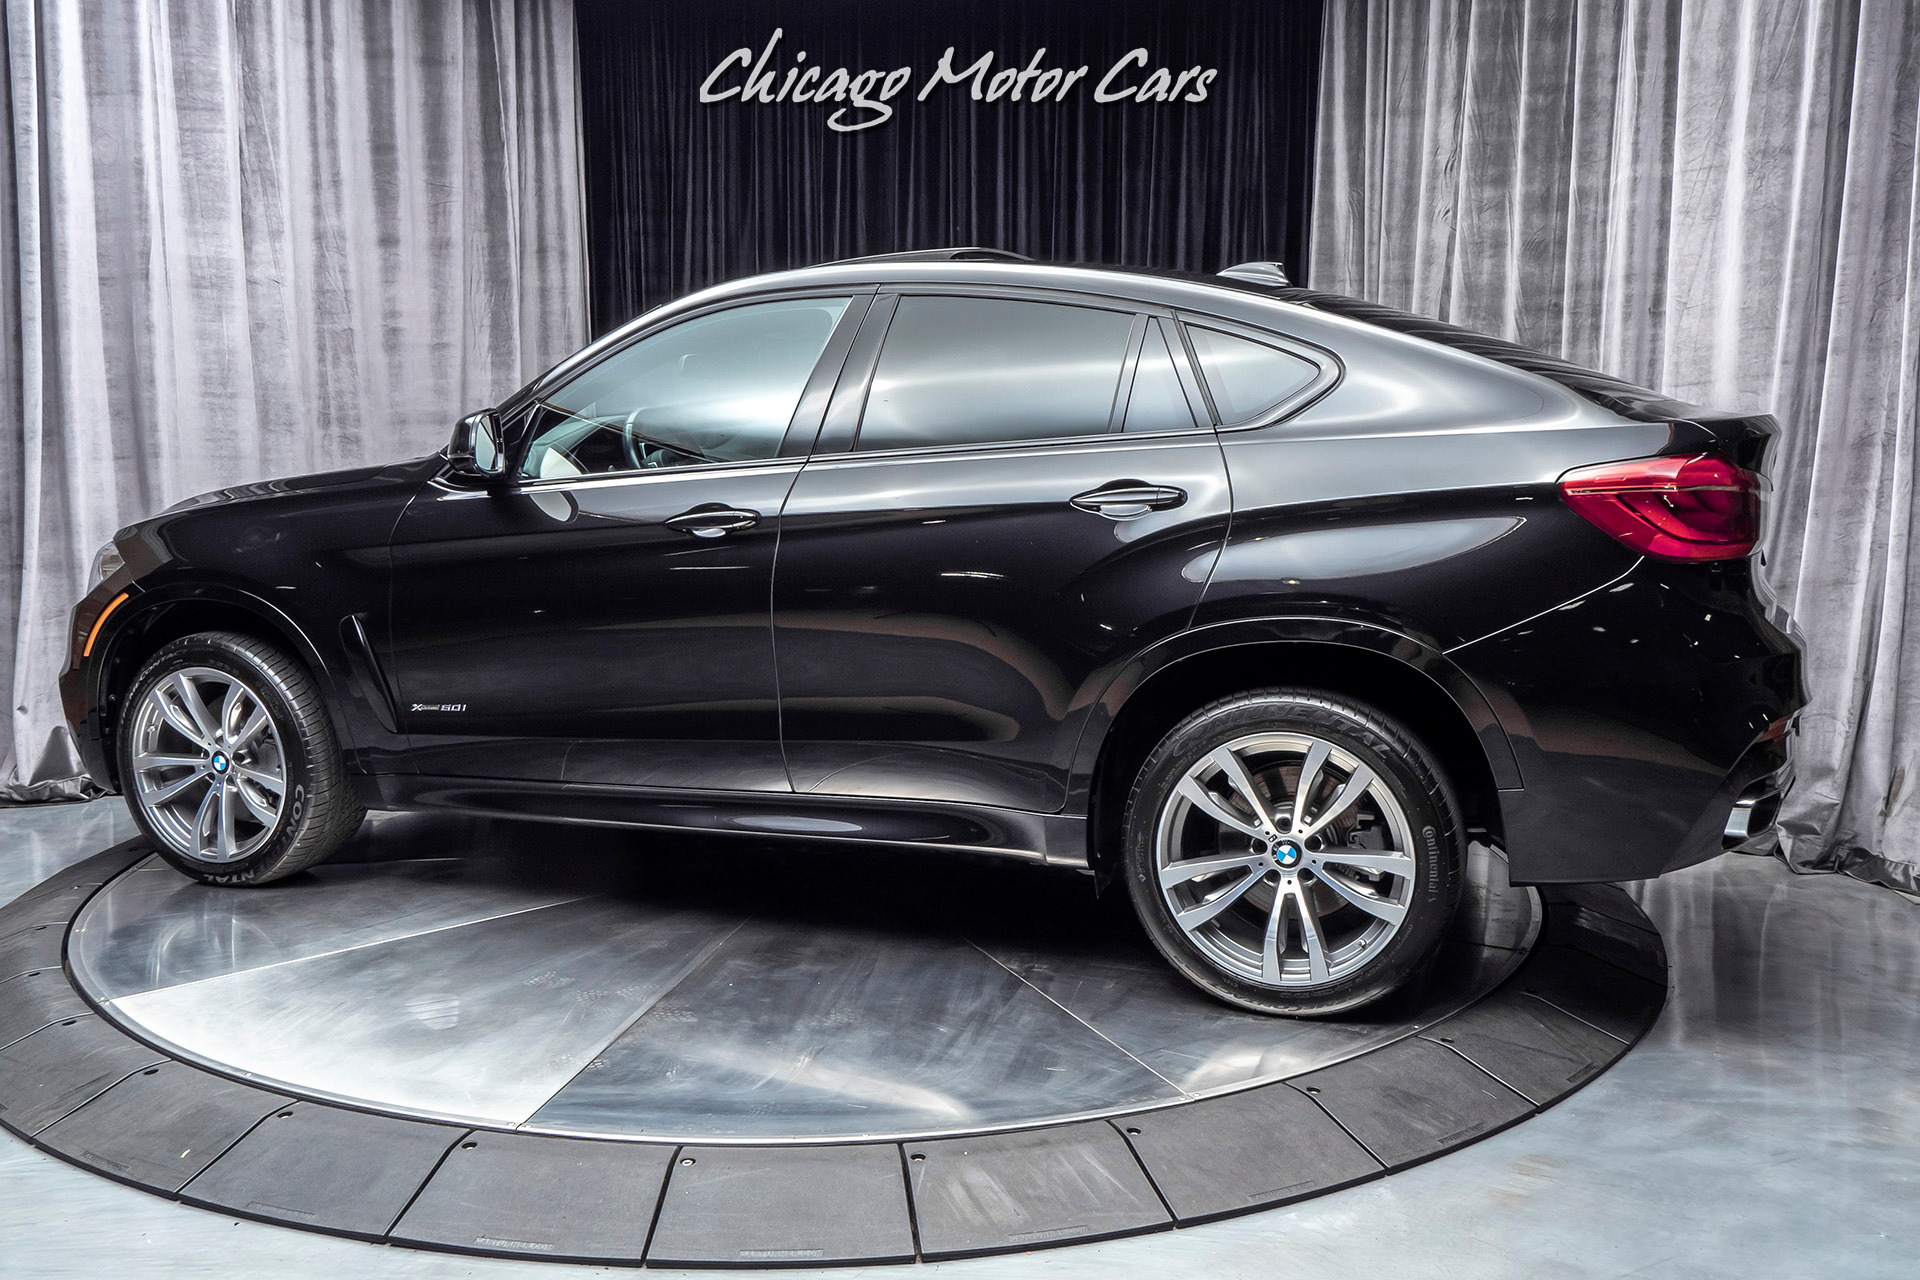 Used-2017-BMW-X6-xDrive50i-SUV-M-SPORT---EXECUTIVE-PACKAGES